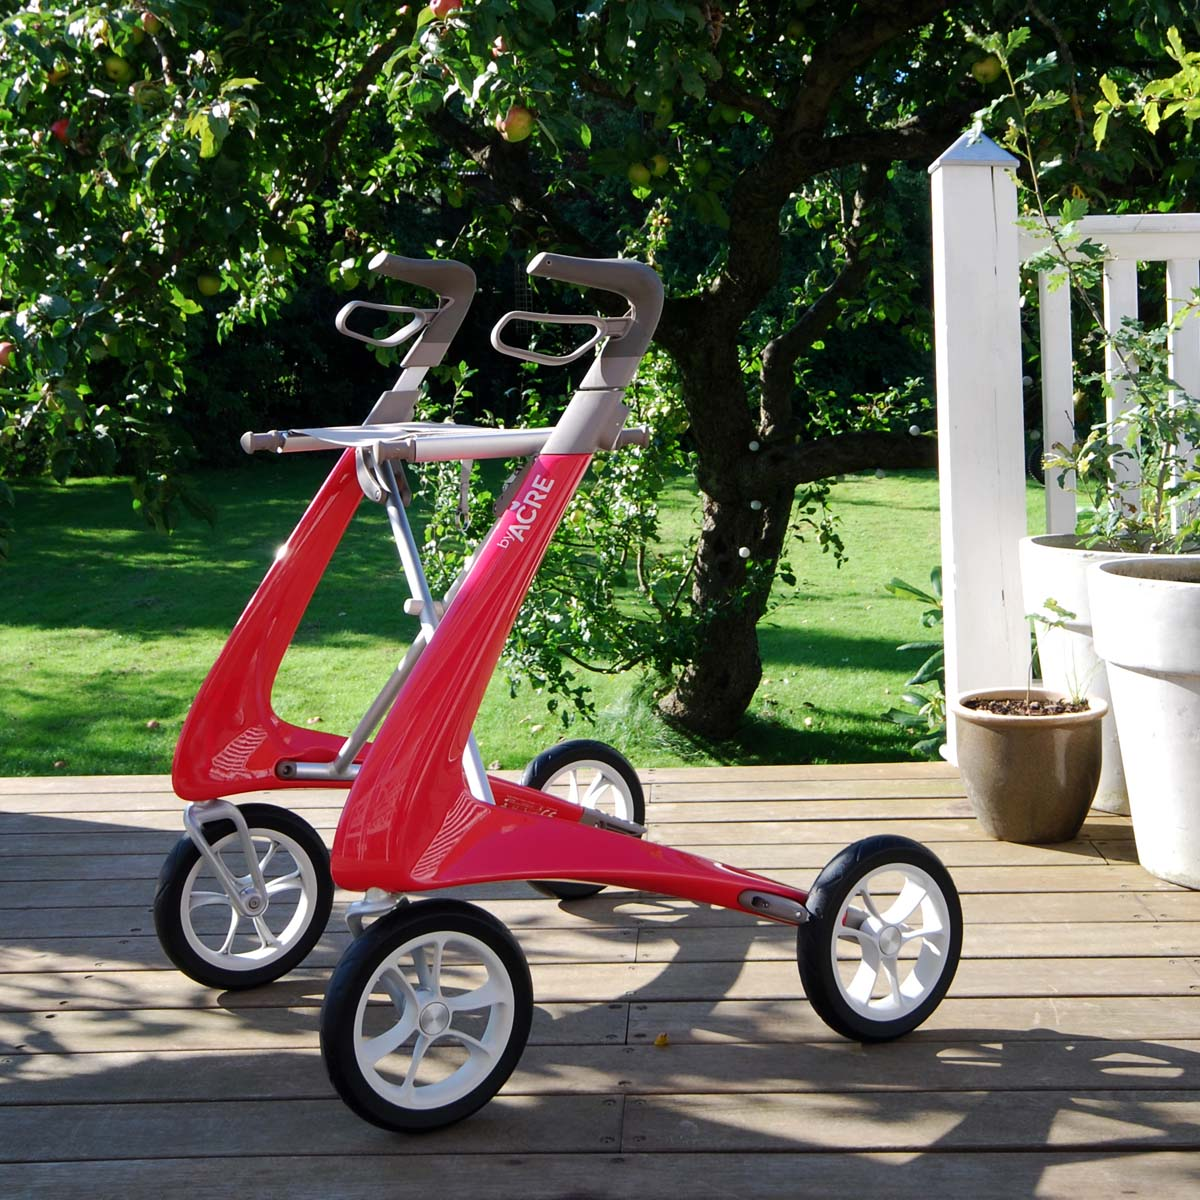 Red Carbon Ultralight Rollator byACRE - seen in perspective on a patio in a garden